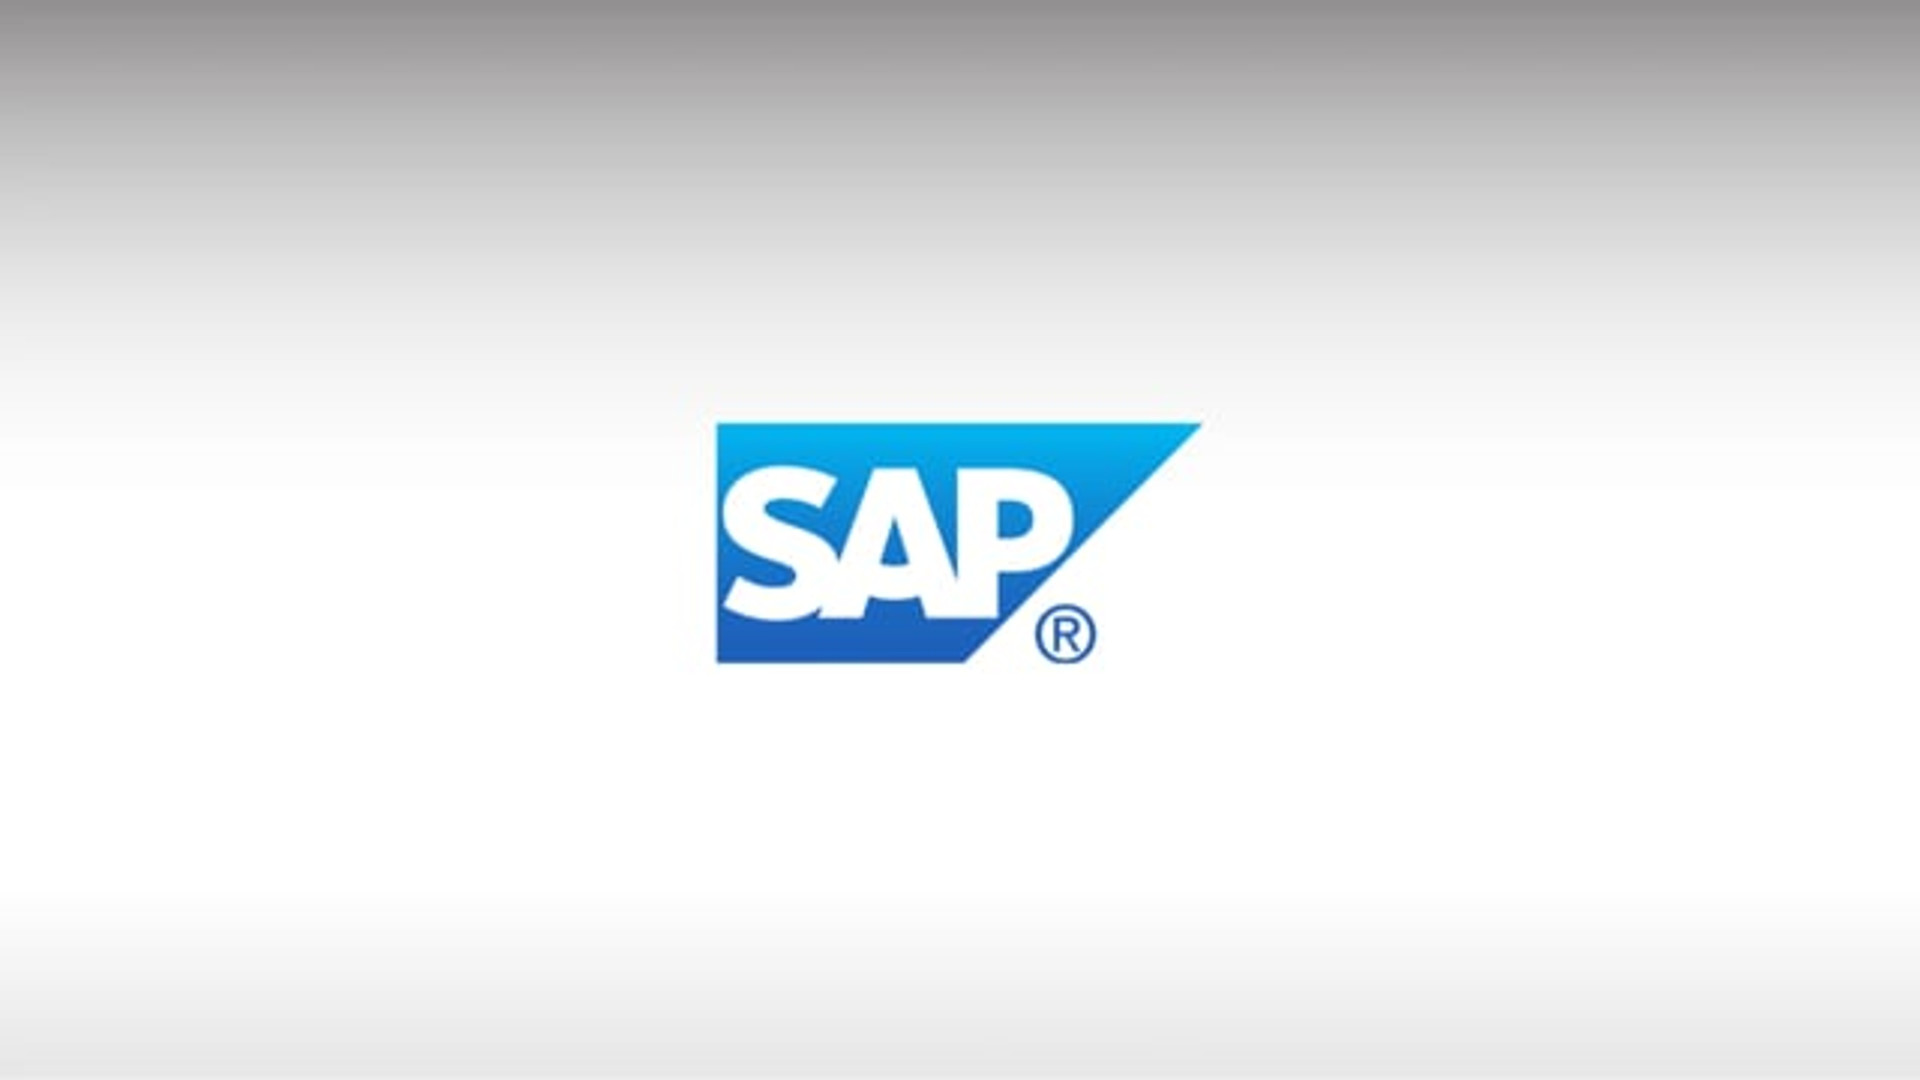 SAP Explainer Video. Contracted by Integrated Marketing Partners.